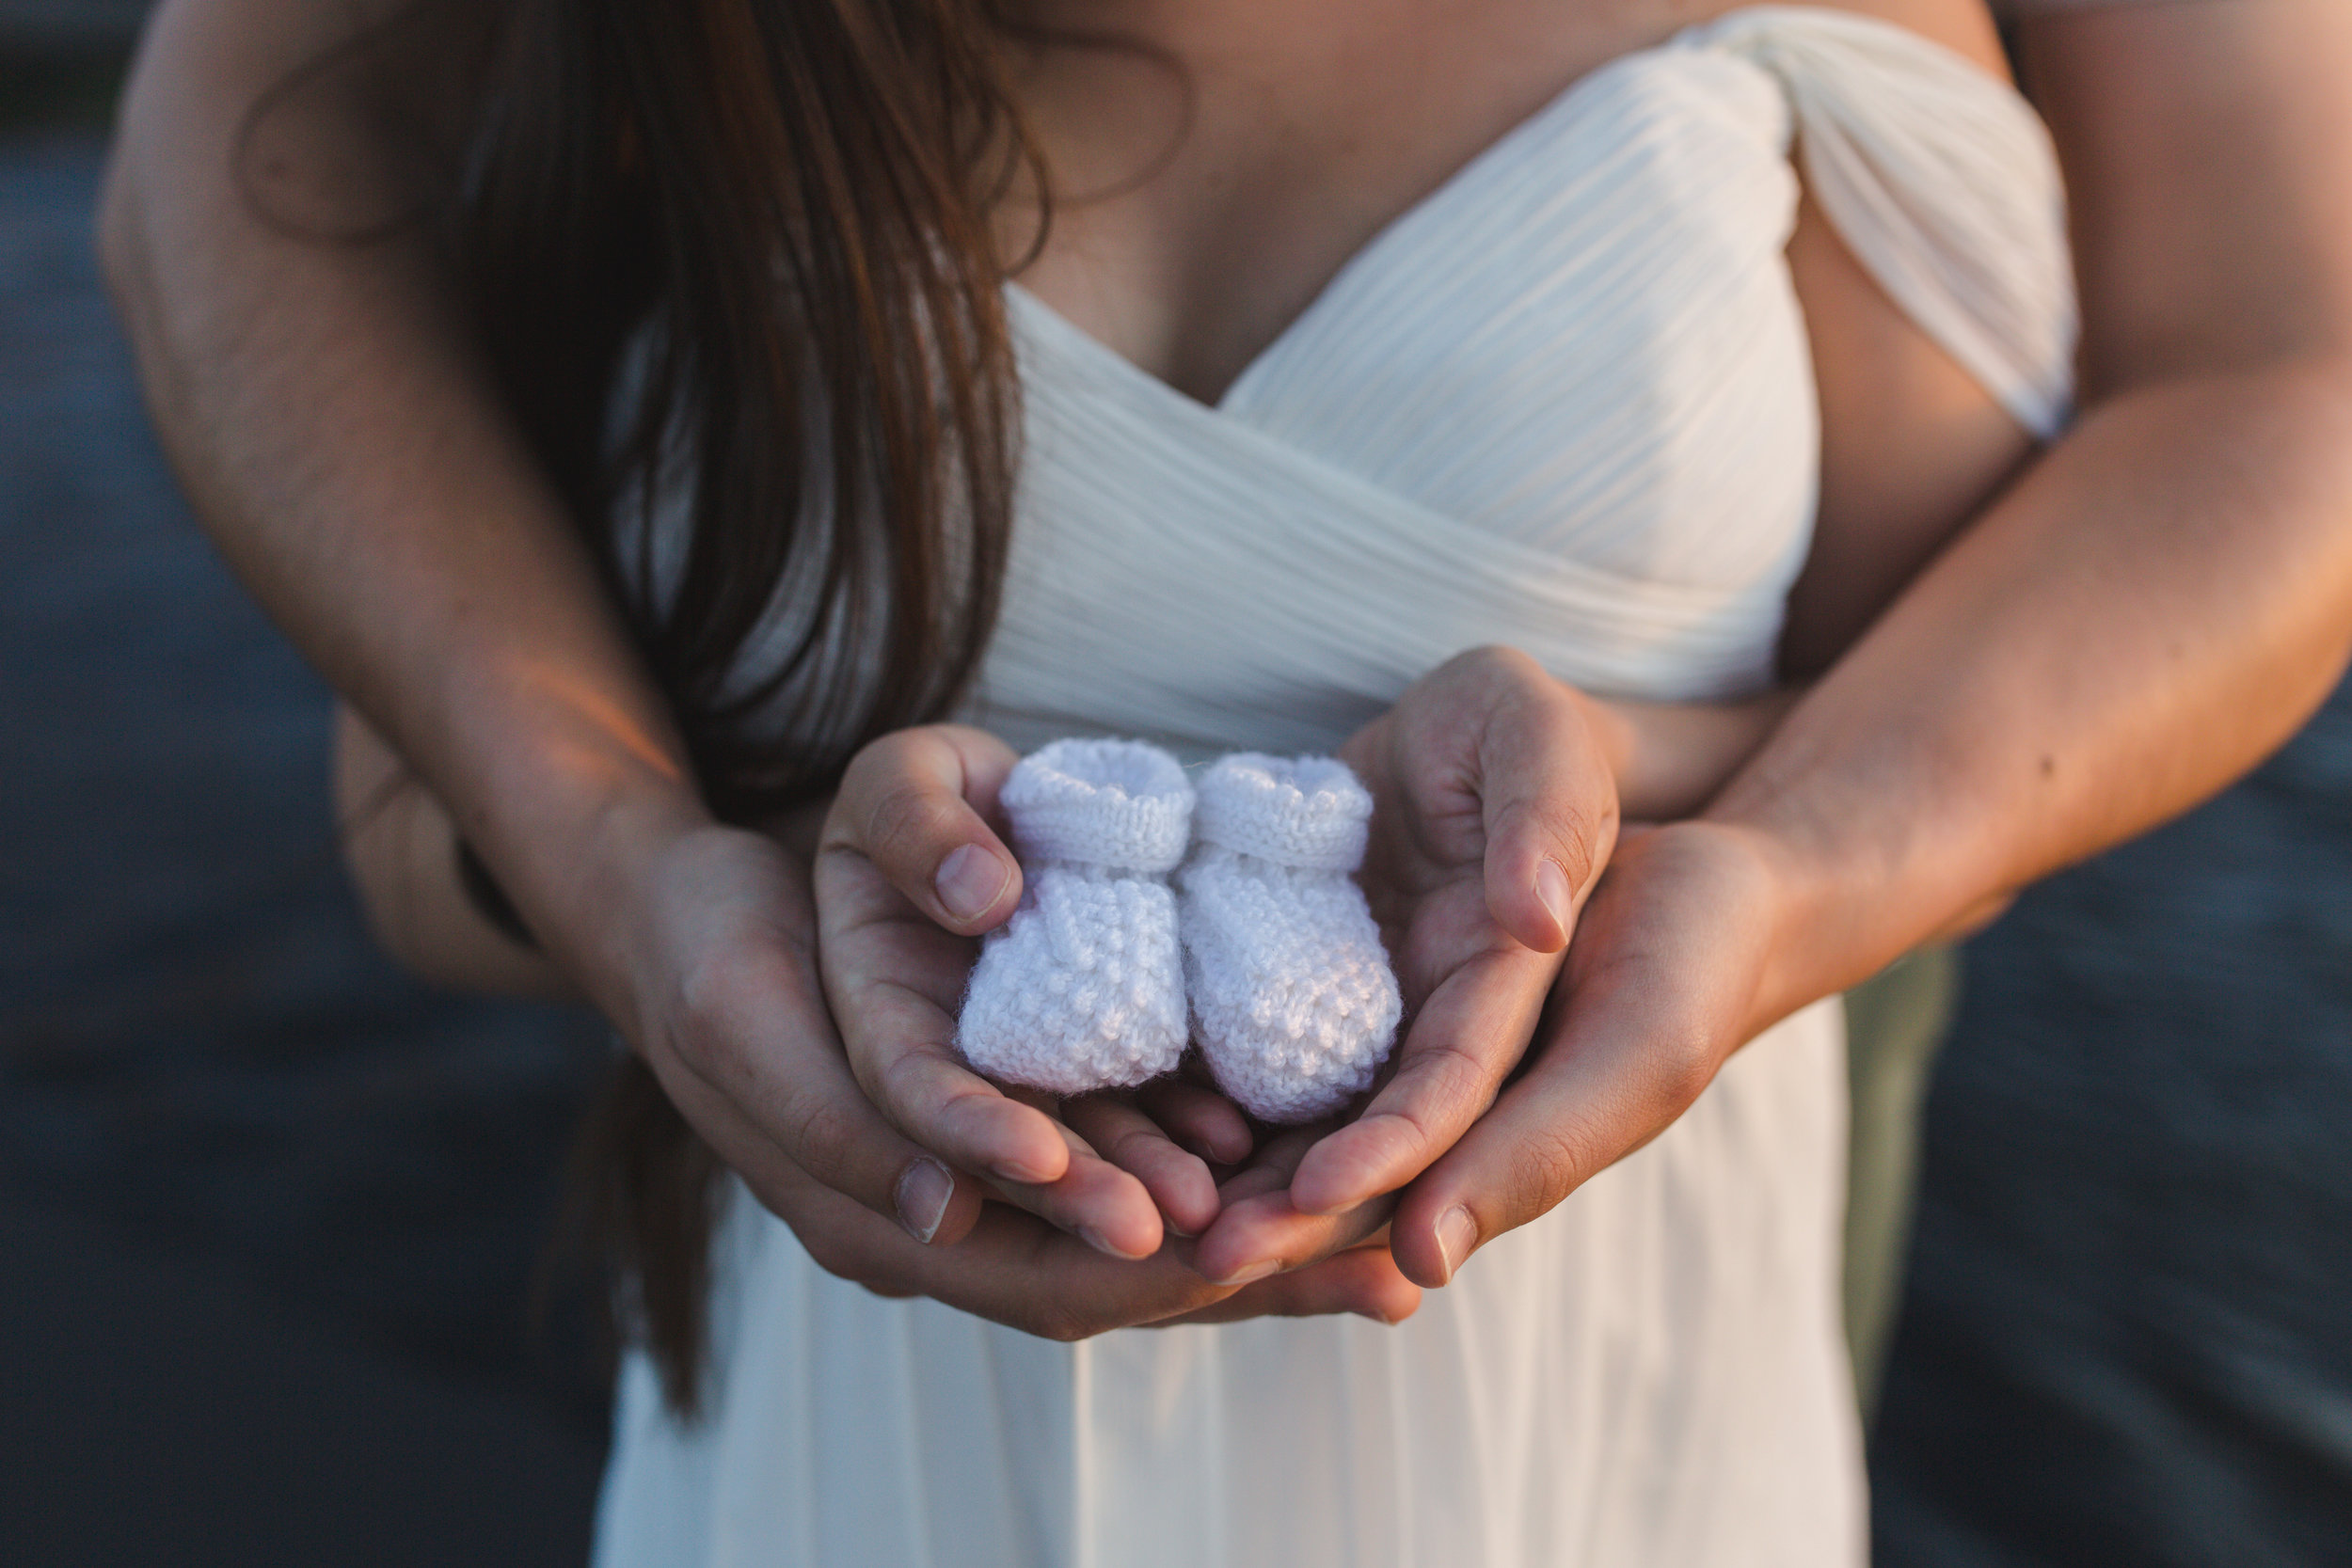 PREGNANCY & NEWBORN - INVESTMENT $750This package is for both the Pregnancy and Newborn Sessions. Sometimes it's just easier to book both sessions in at the same time and get a bit of a discount.